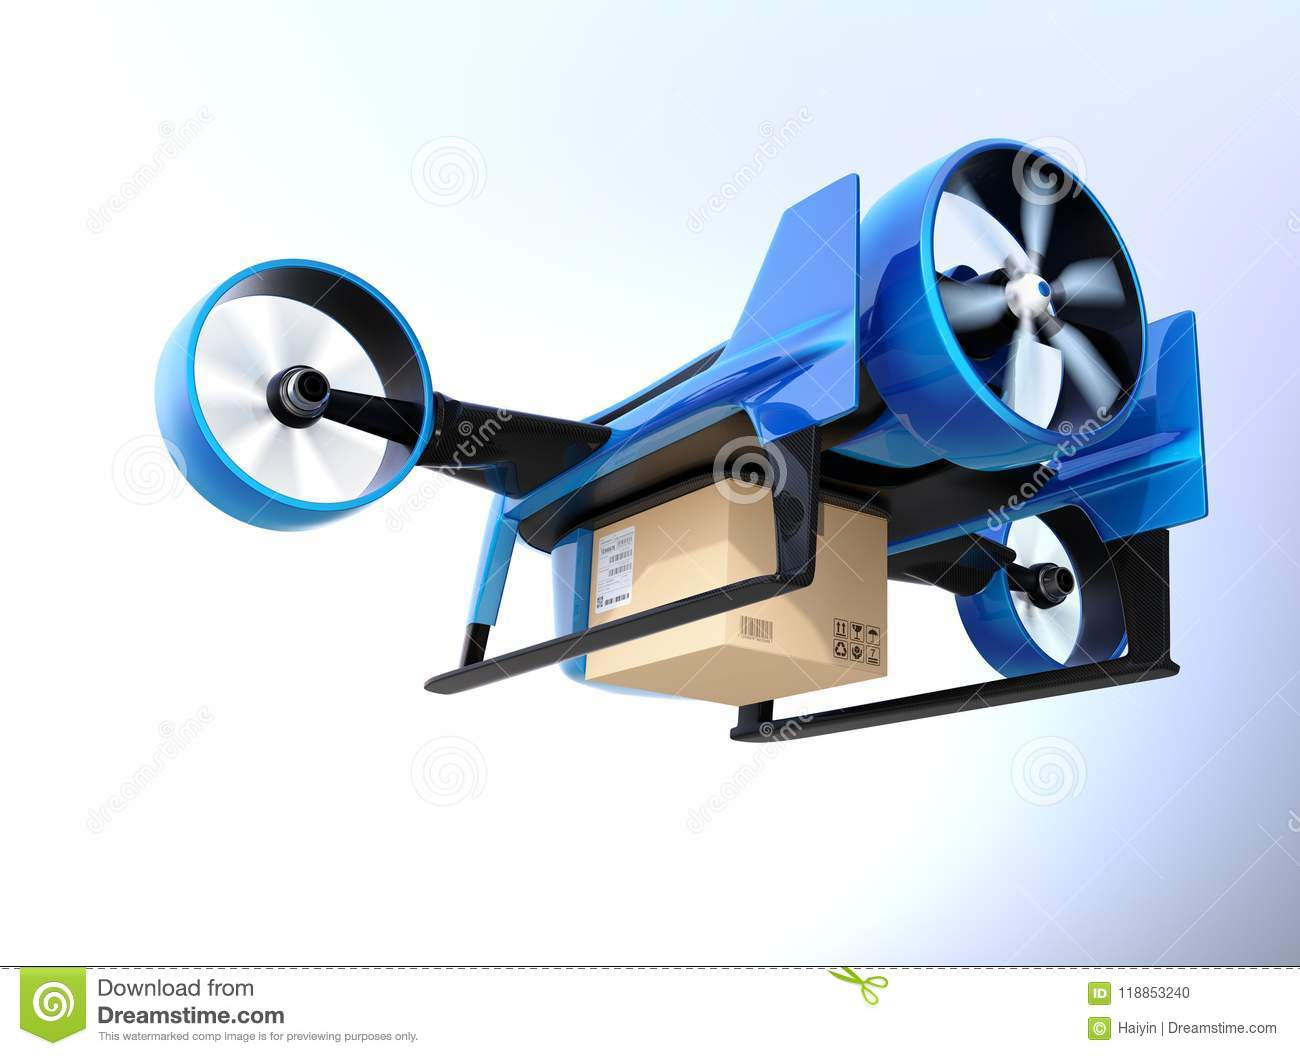 Metallic Blue VTOL Drone Carrying Delivery Package Flying In